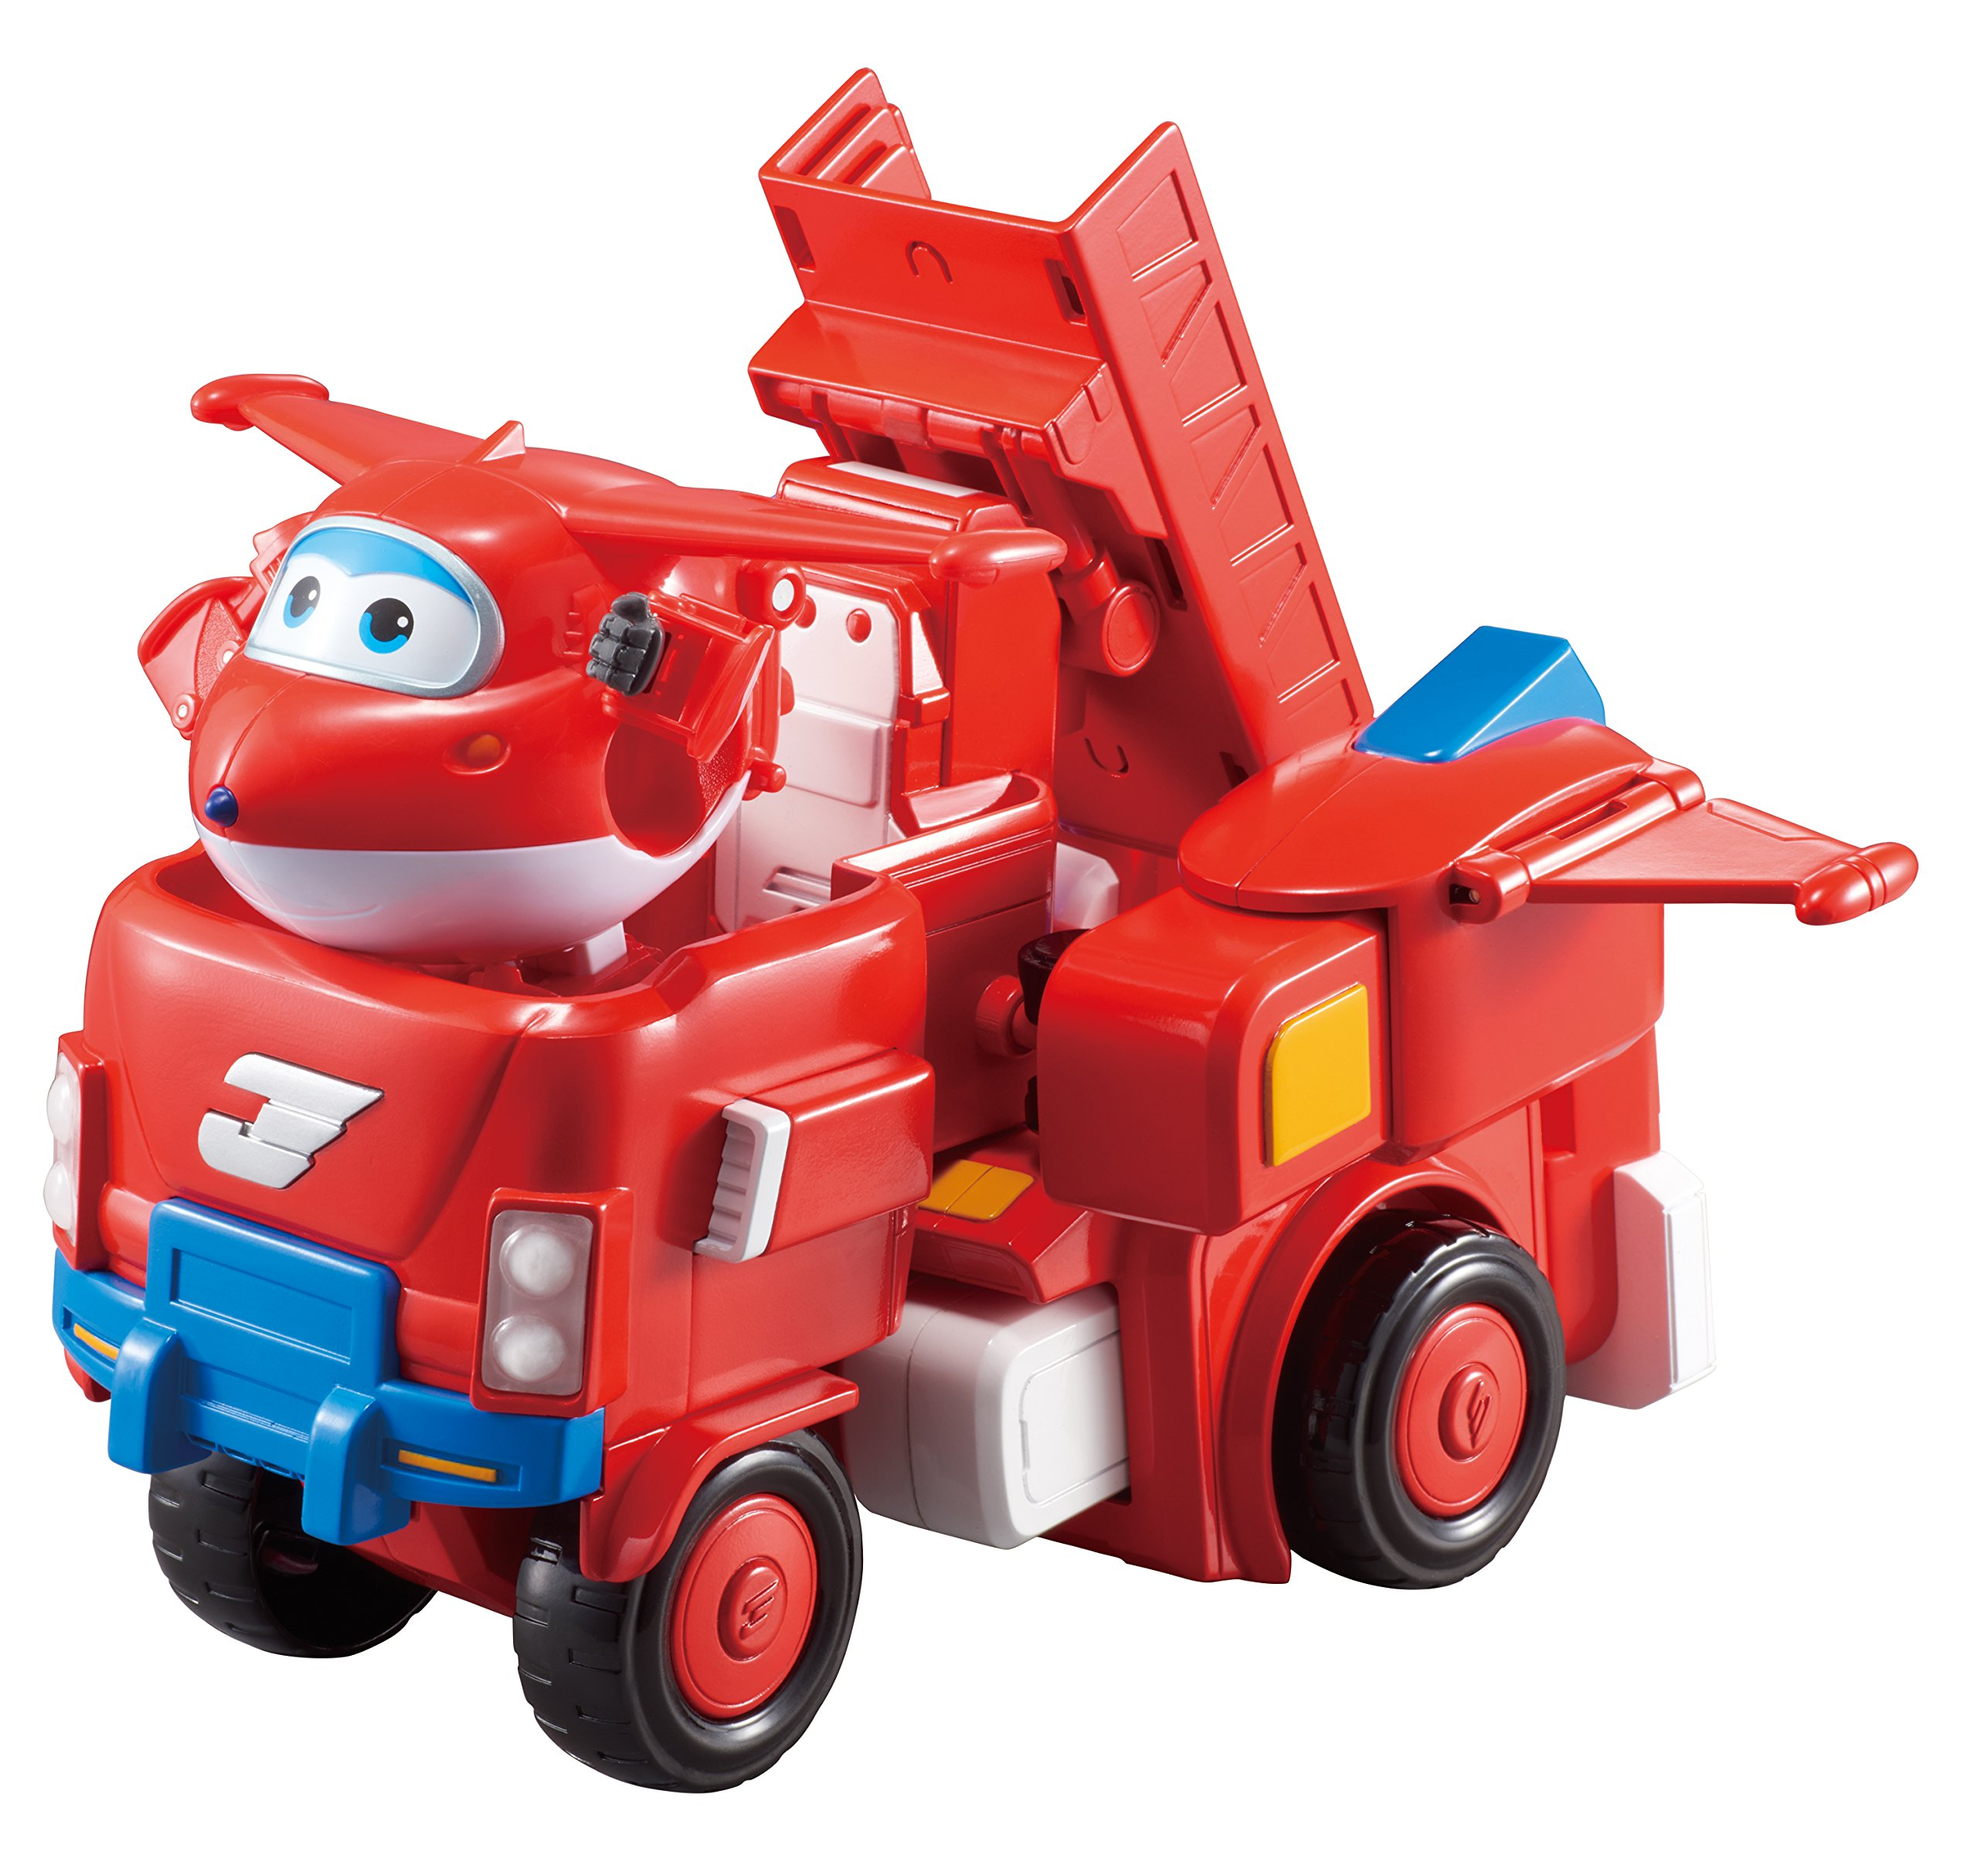 Super Wings - Jett's Super Robot Suit Large Transforming Toy Vehicle | Includes Jett | 5'' Scale by Super Wings - (Image #3)